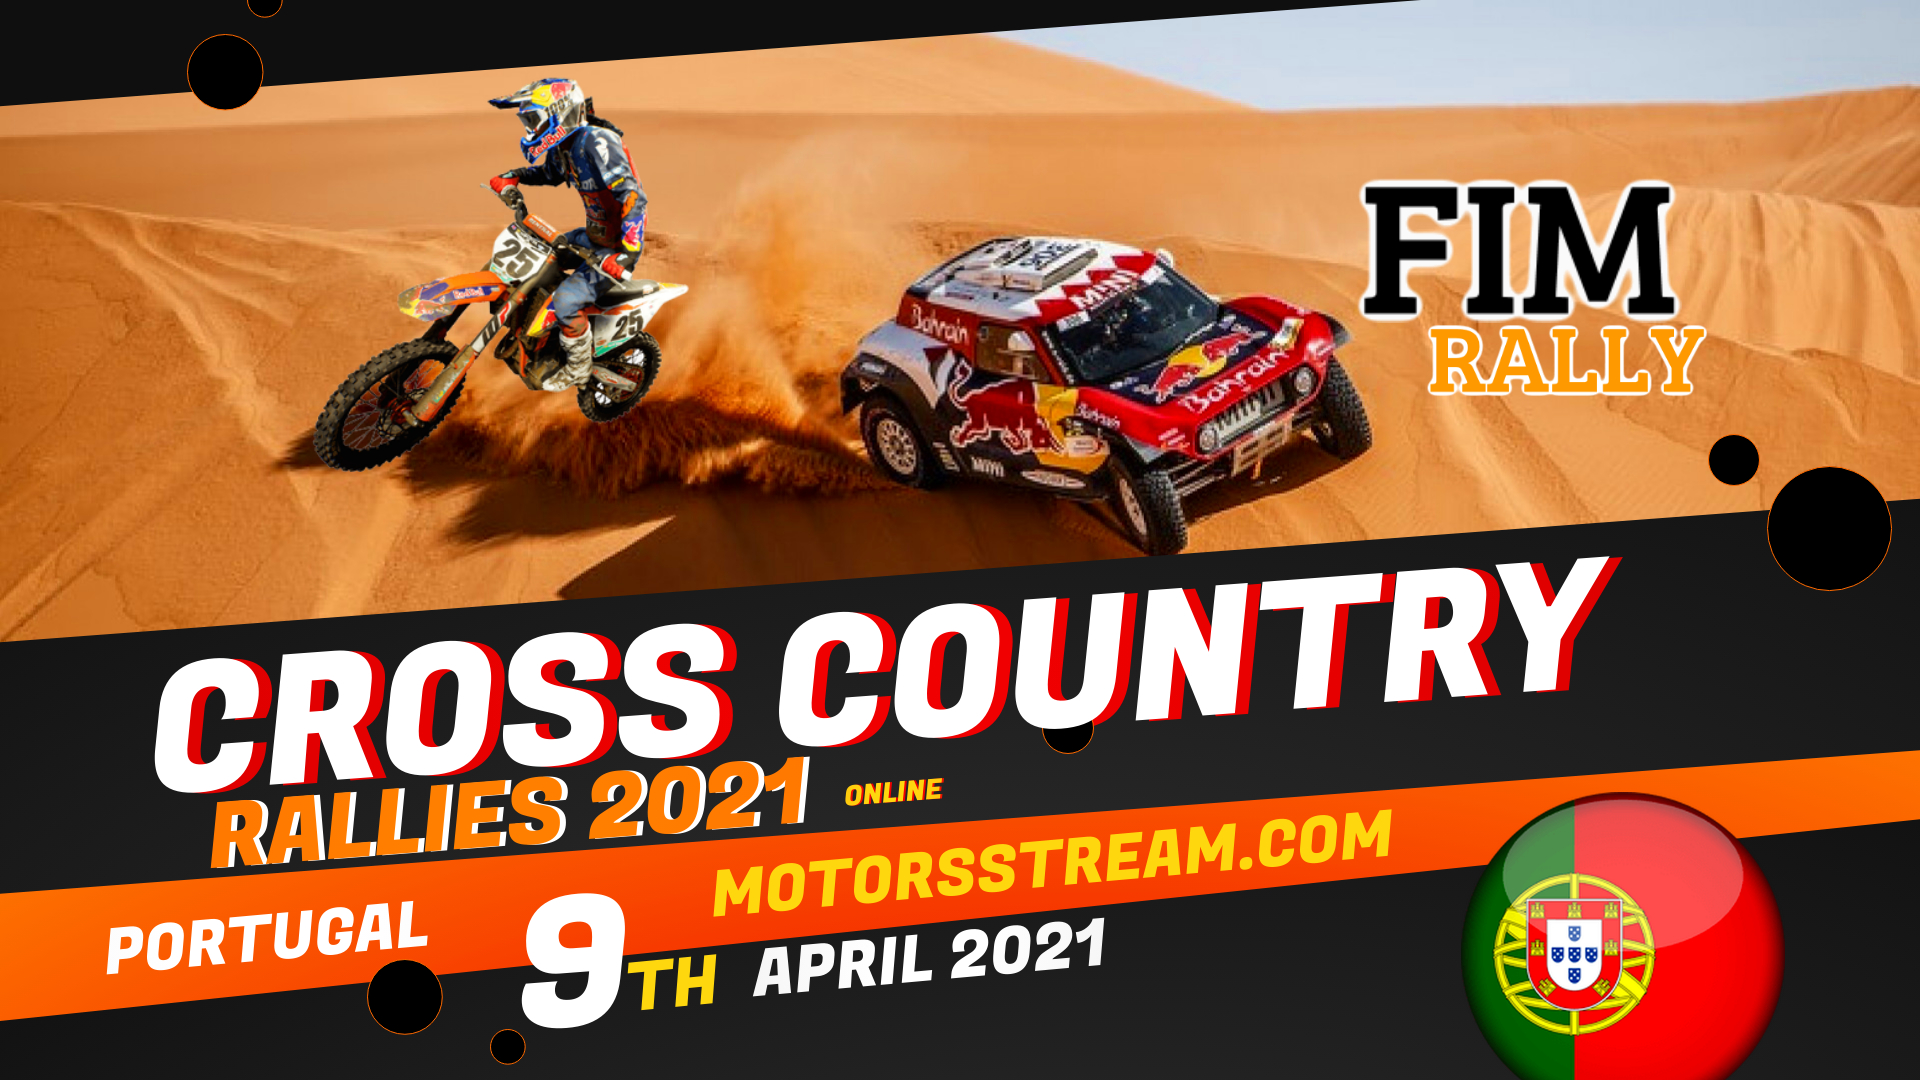 Portugal Cross Country Rallies Live Stream 2021